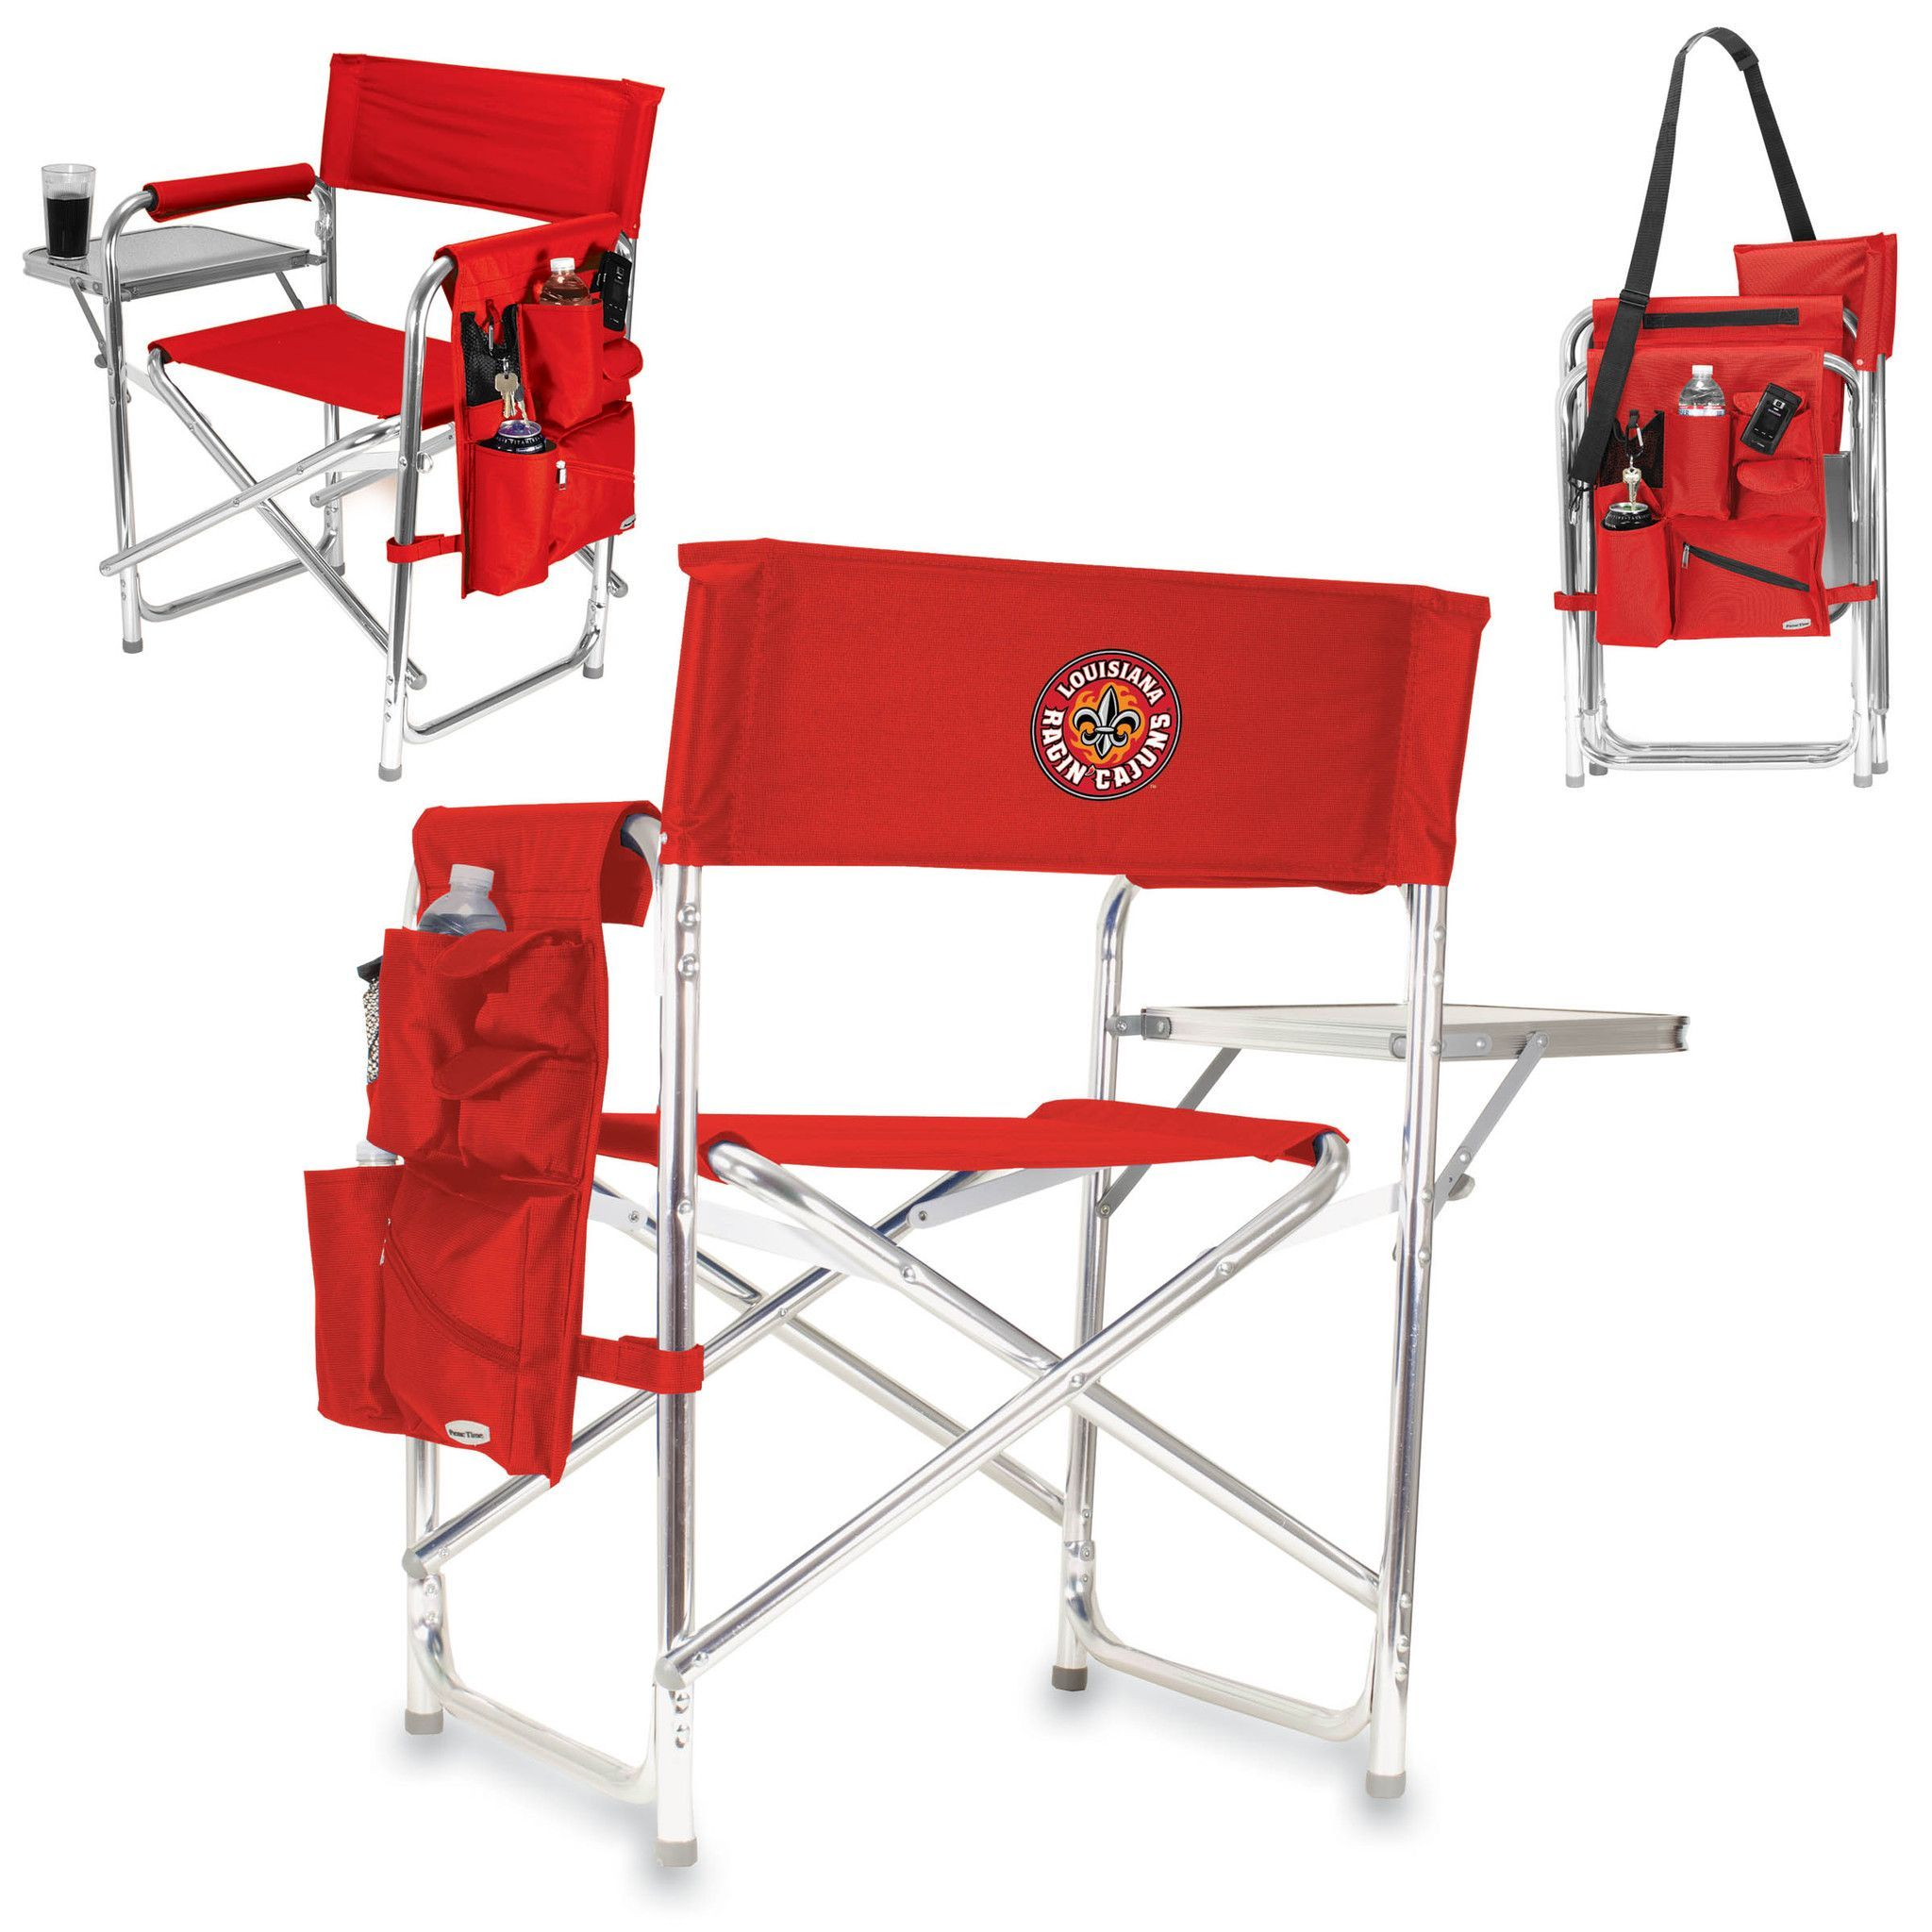 The Ragin Cajuns Sports Chair by Picnic Time is the ultimate tailgating and spectator chair. It's easy to carry being lightweight at only 10 Lbs. This portable folding chair with durable aluminum fram